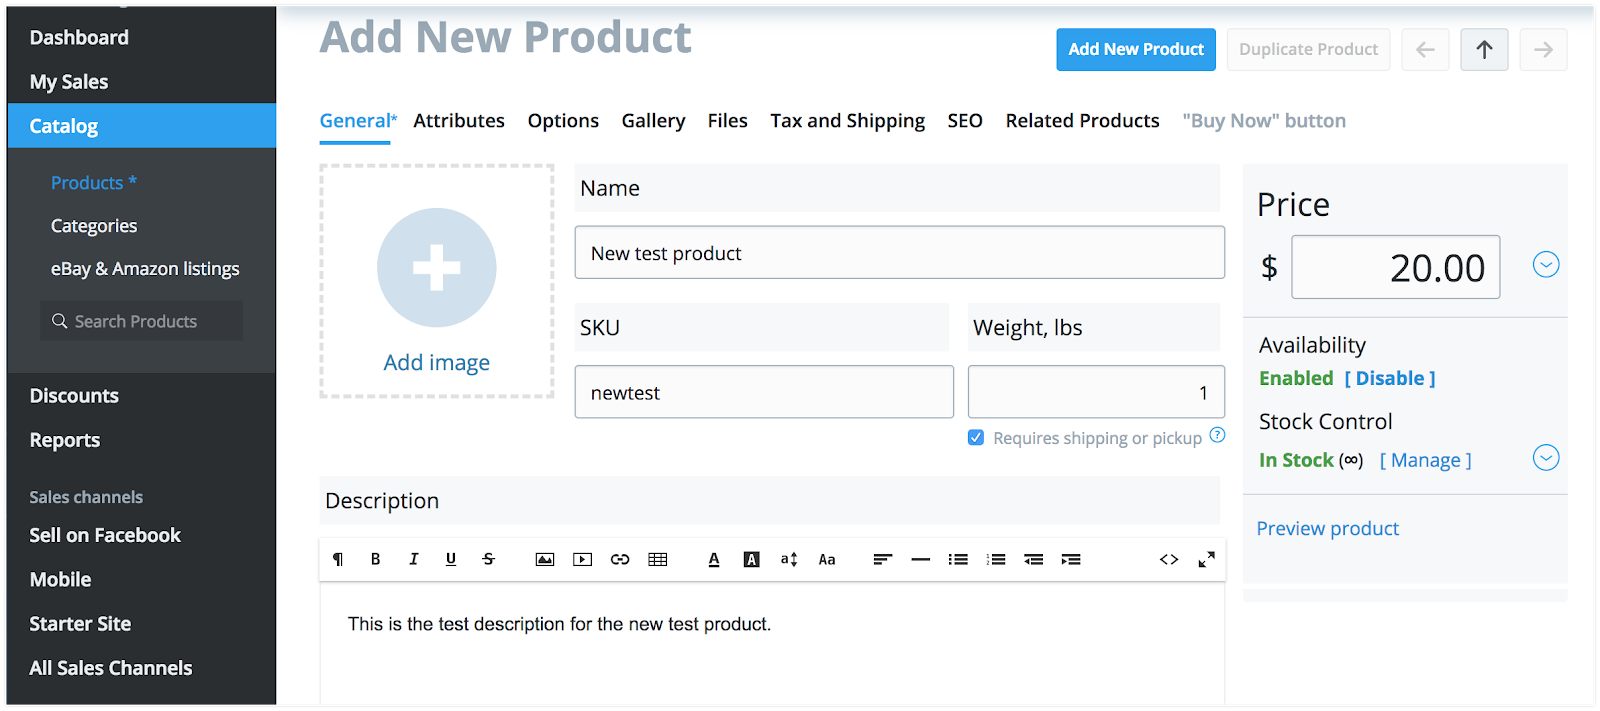 Fill in the main product details